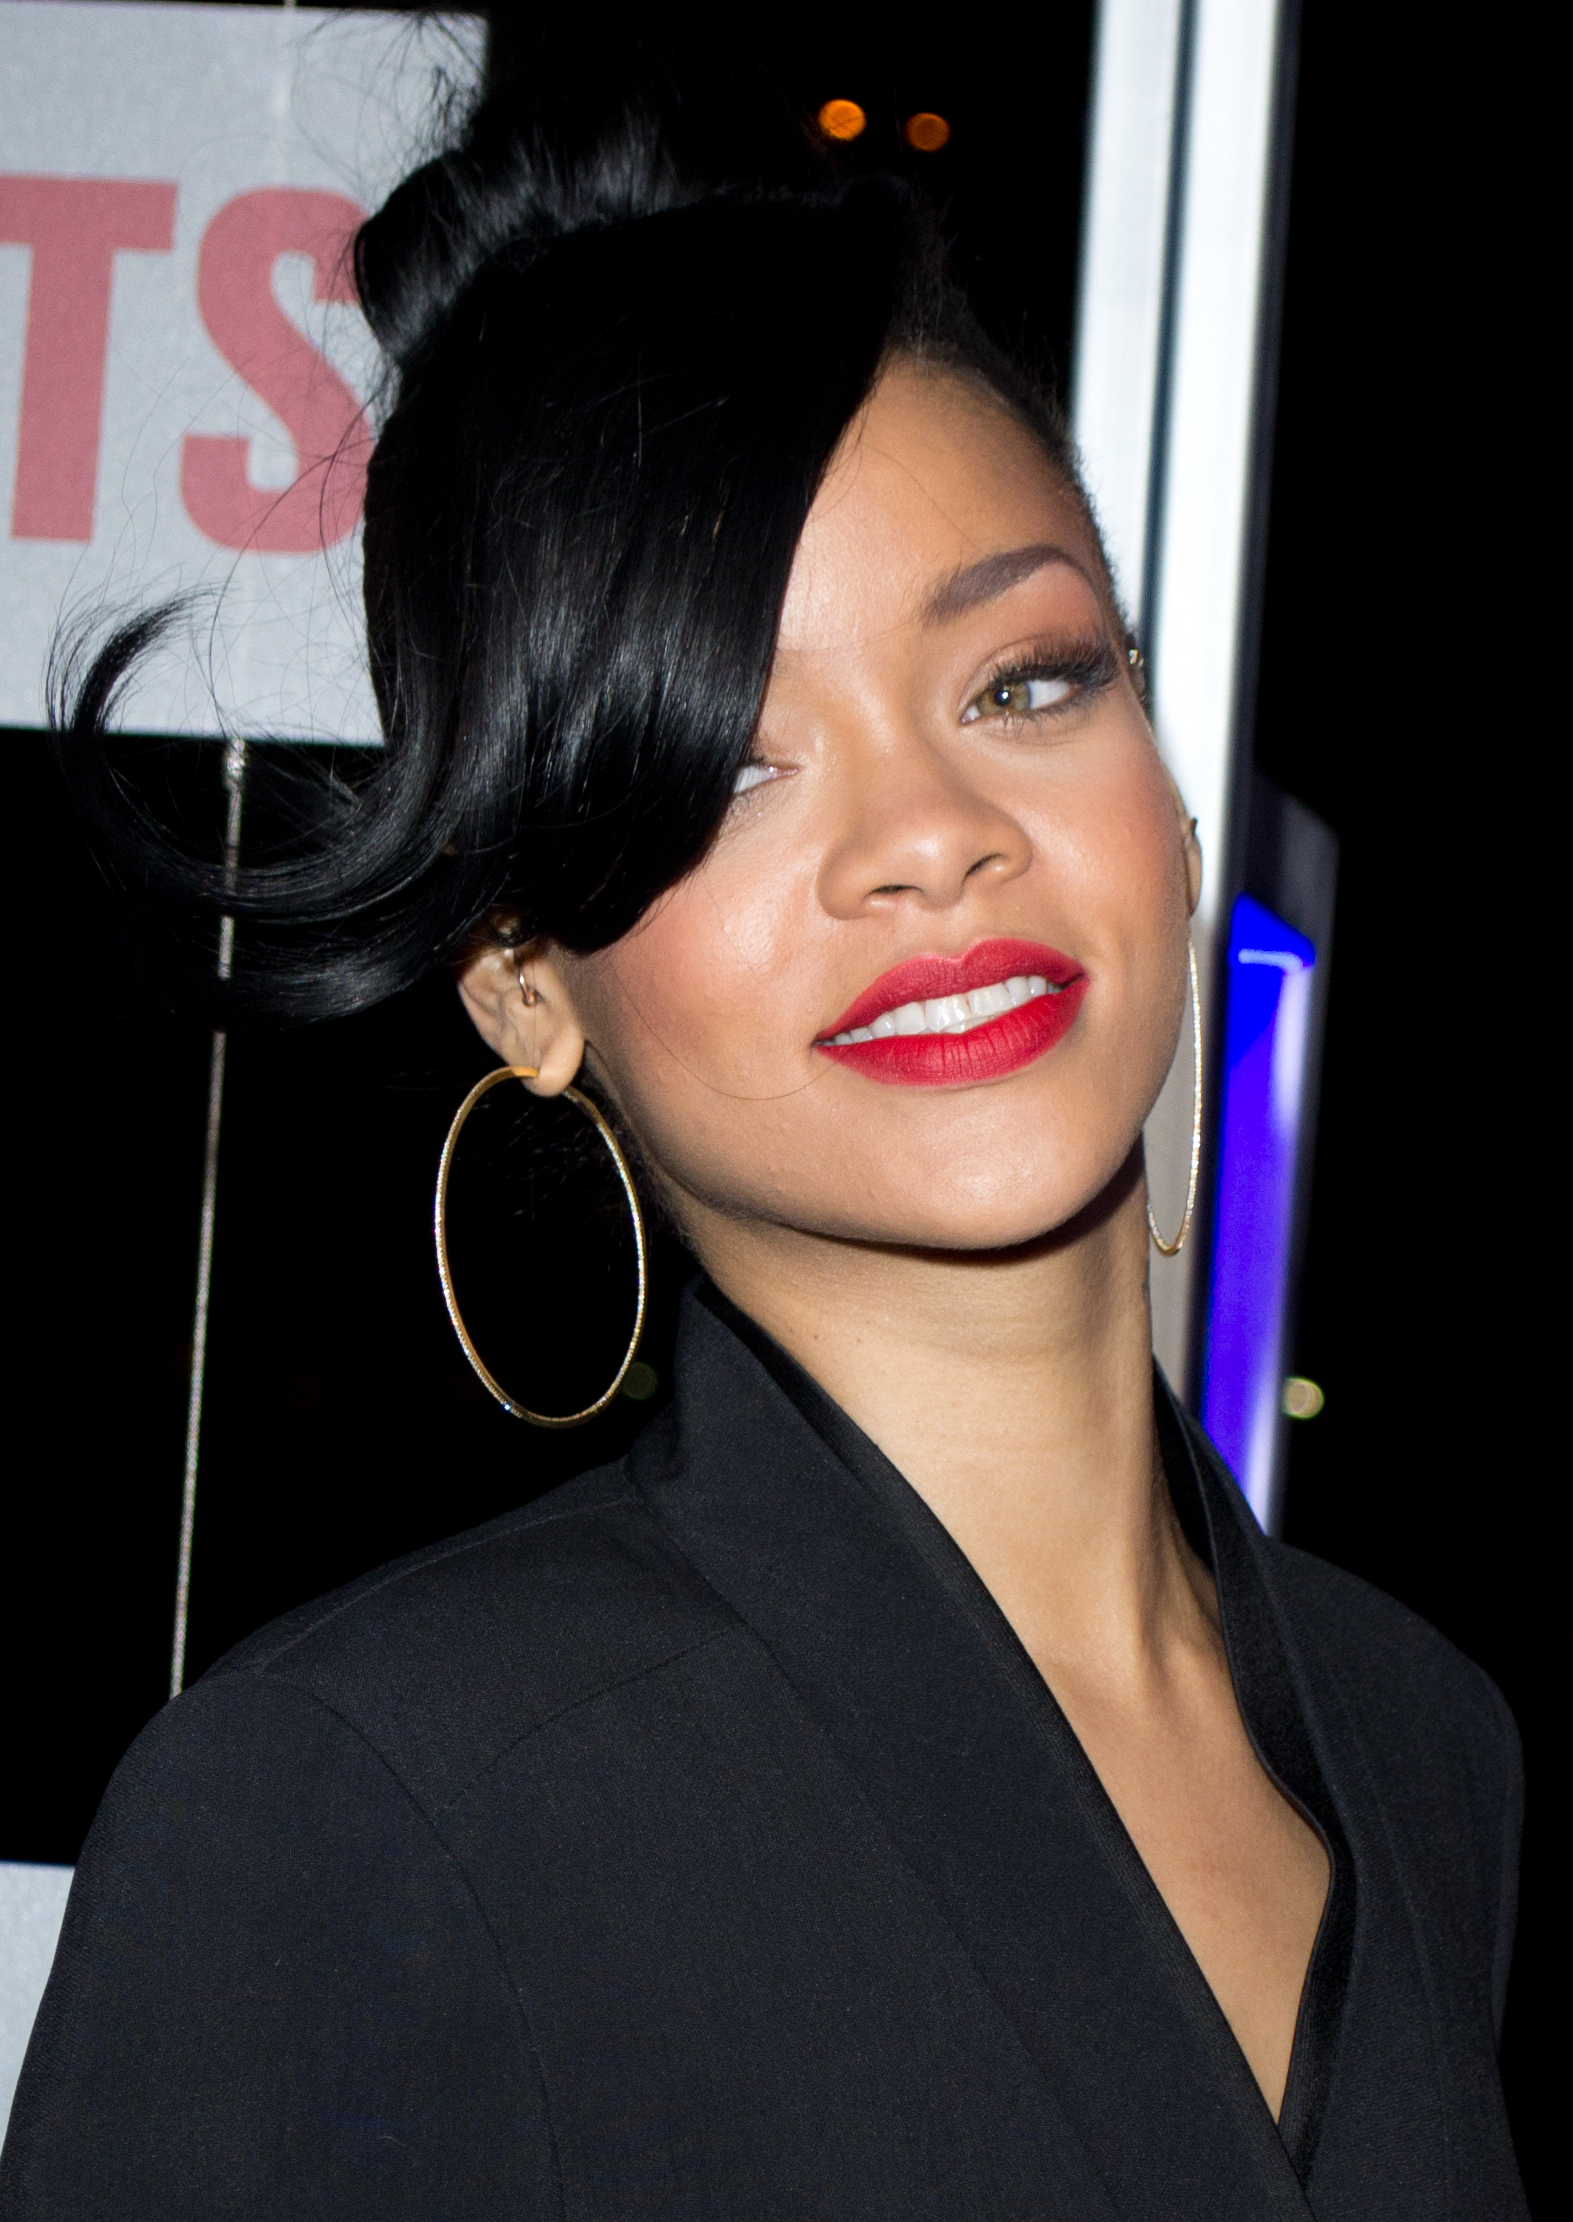 The 30-year old daughter of father Ronald Fenty and mother Monica Fenty, 173 cm tall Rihanna in 2018 photo